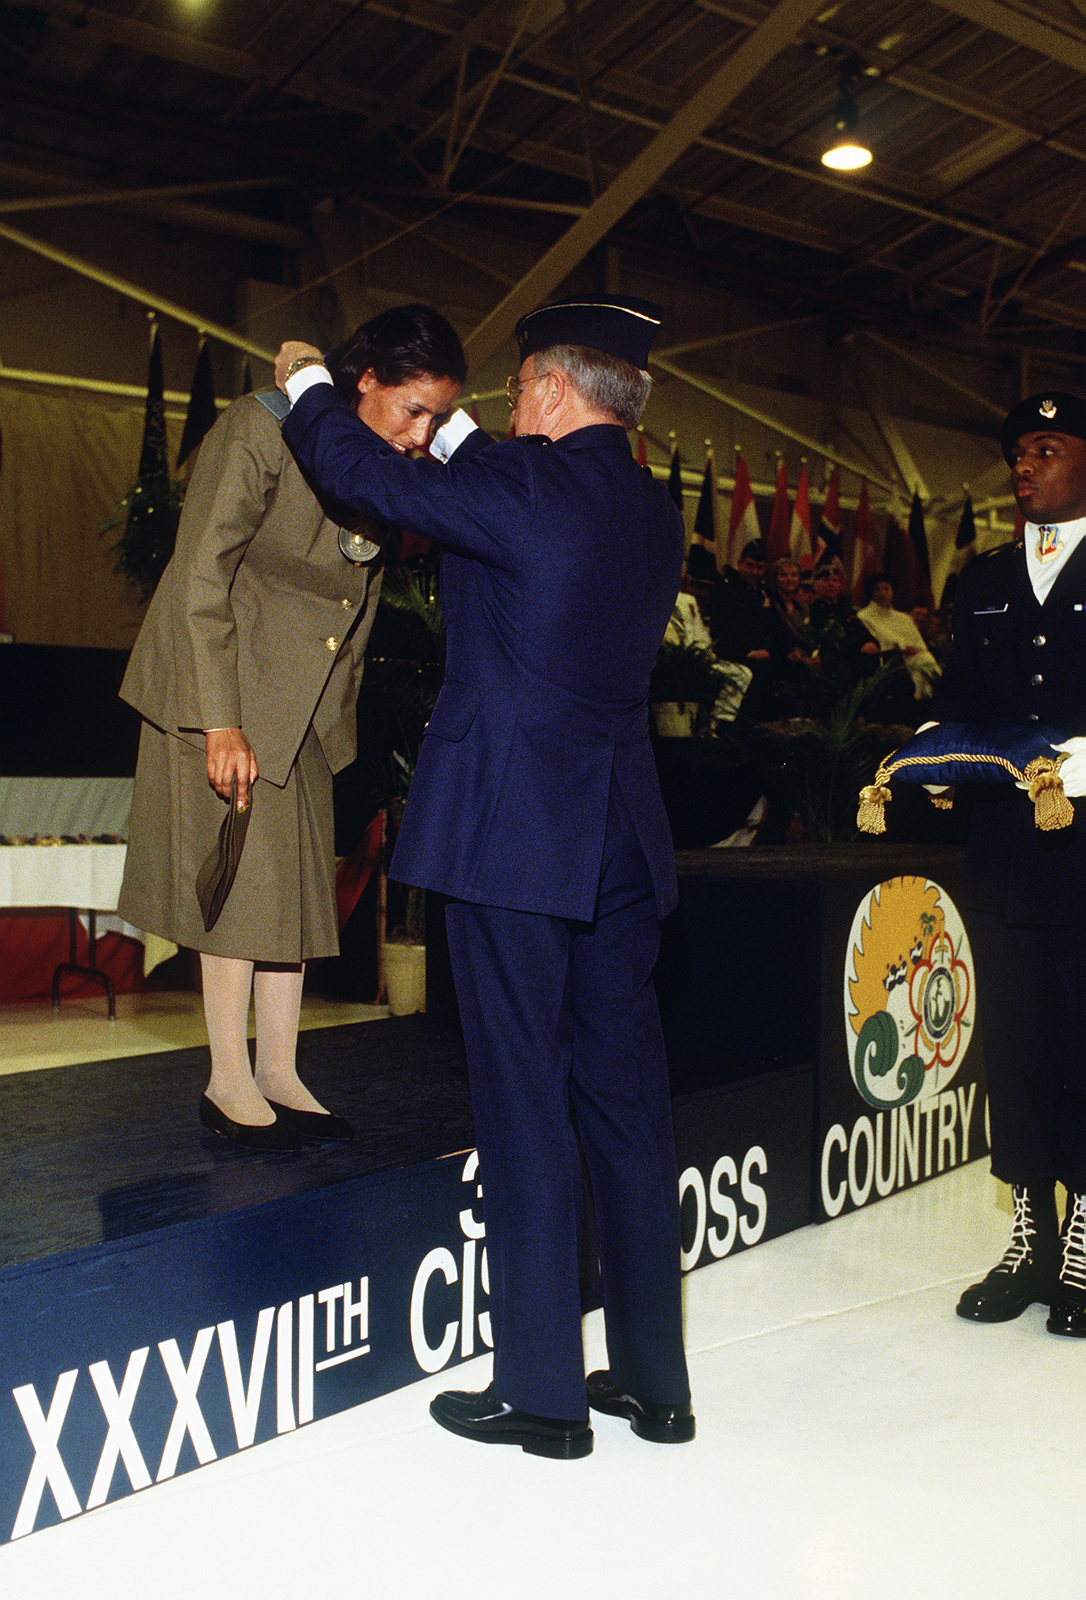 R'kiya Maraqui of Morocco, third place finisher in the women's five kilometer race, receives her bronze medal during the closing ceremony of the 1988 Conseil International Du Sport Militaire's Cross Country Championship (CISM)